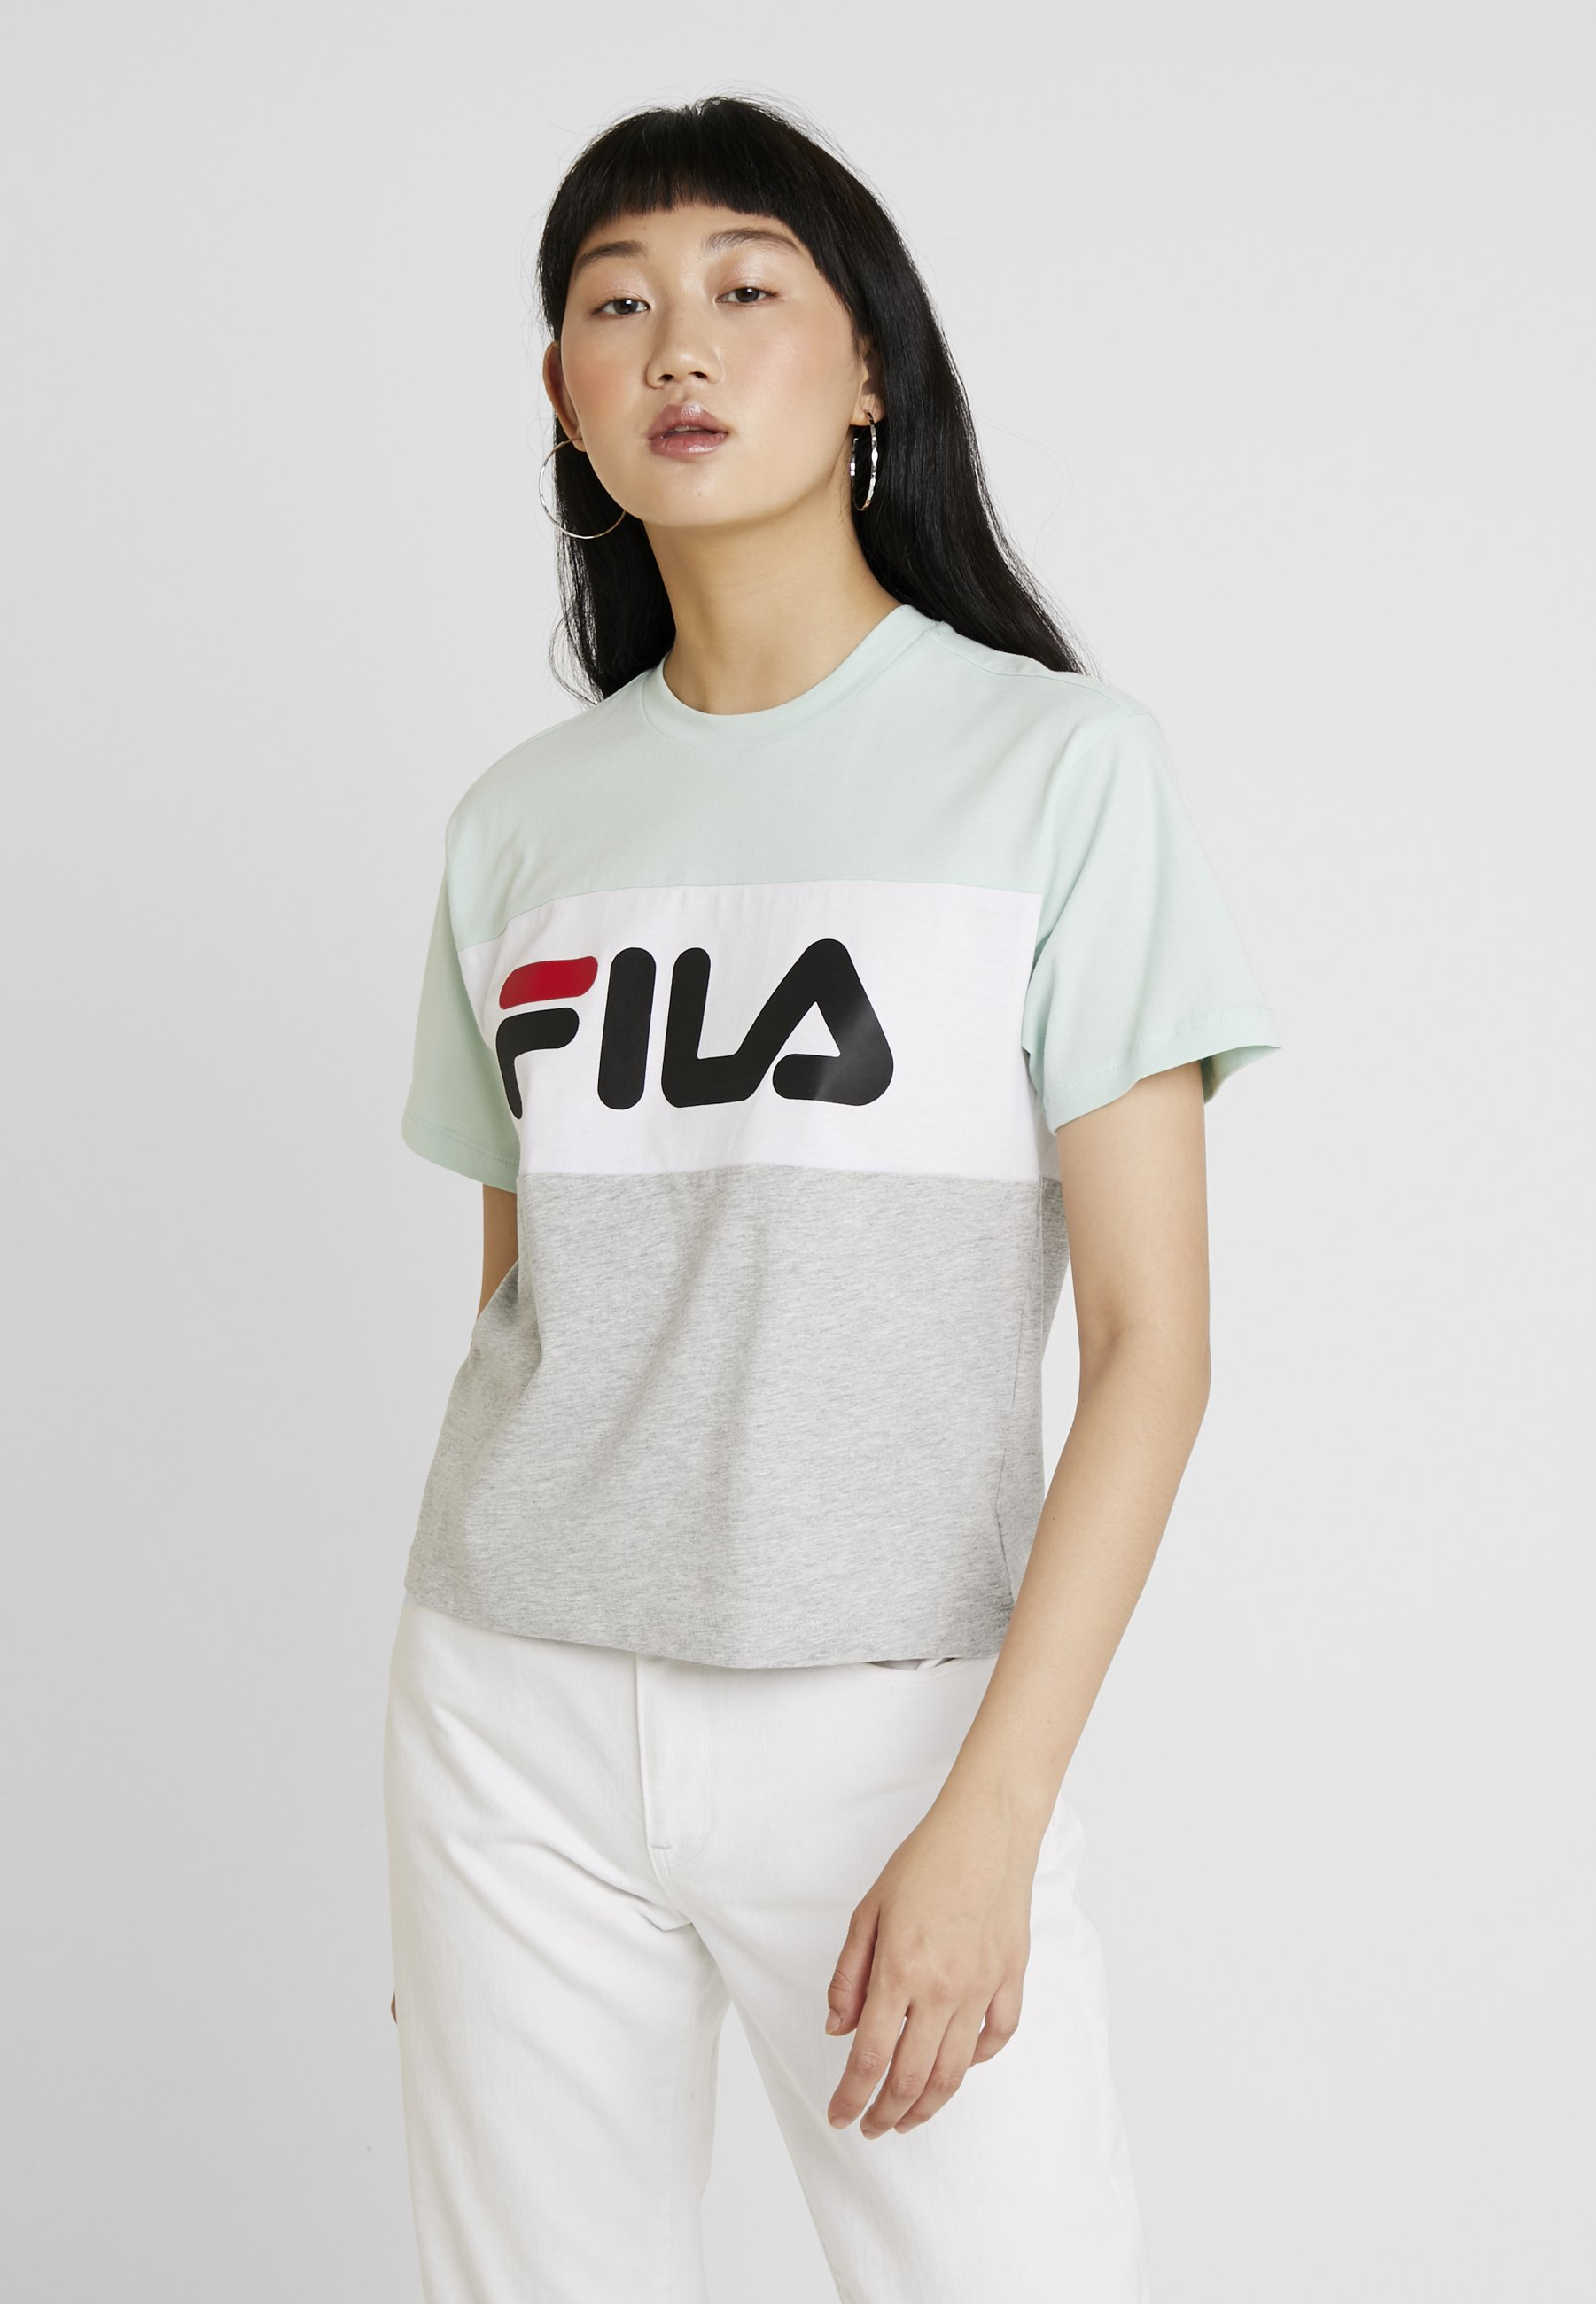 ALLISON melange mist white bright grey green TEET Fila shirt imprimé light qzUMVSp